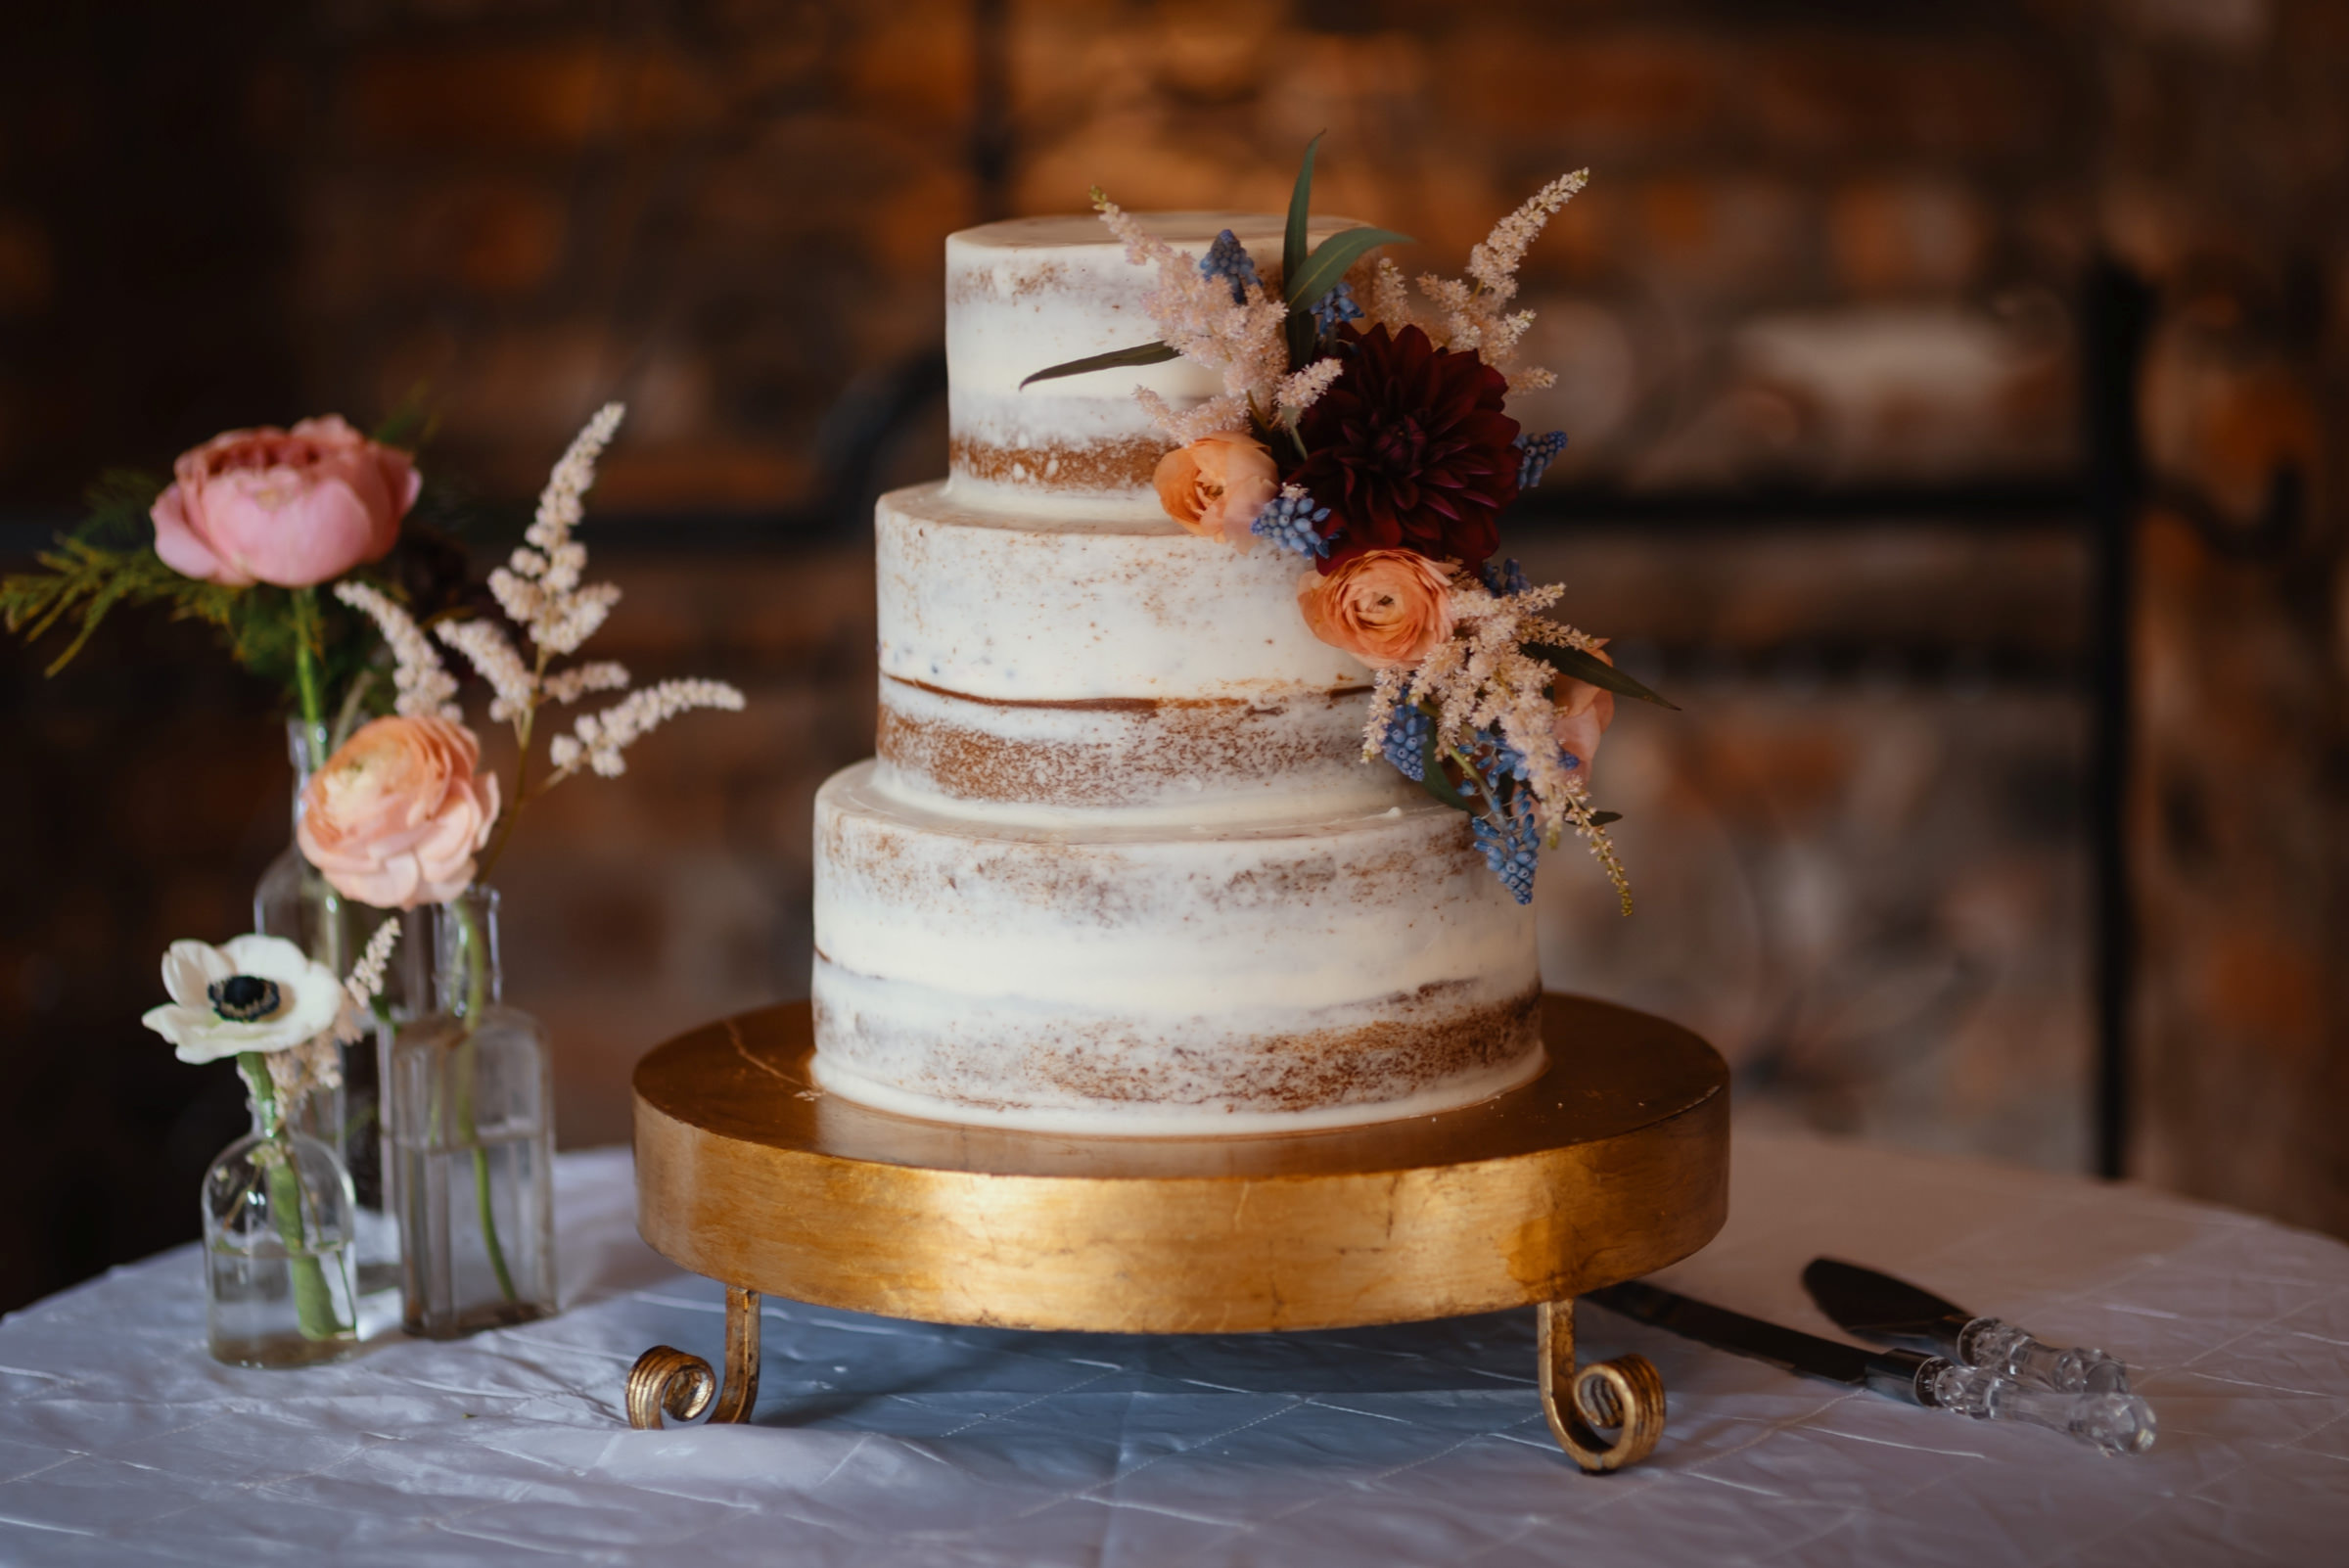 Three tiered cake on gold stand with flowers - photo by Dark Roux